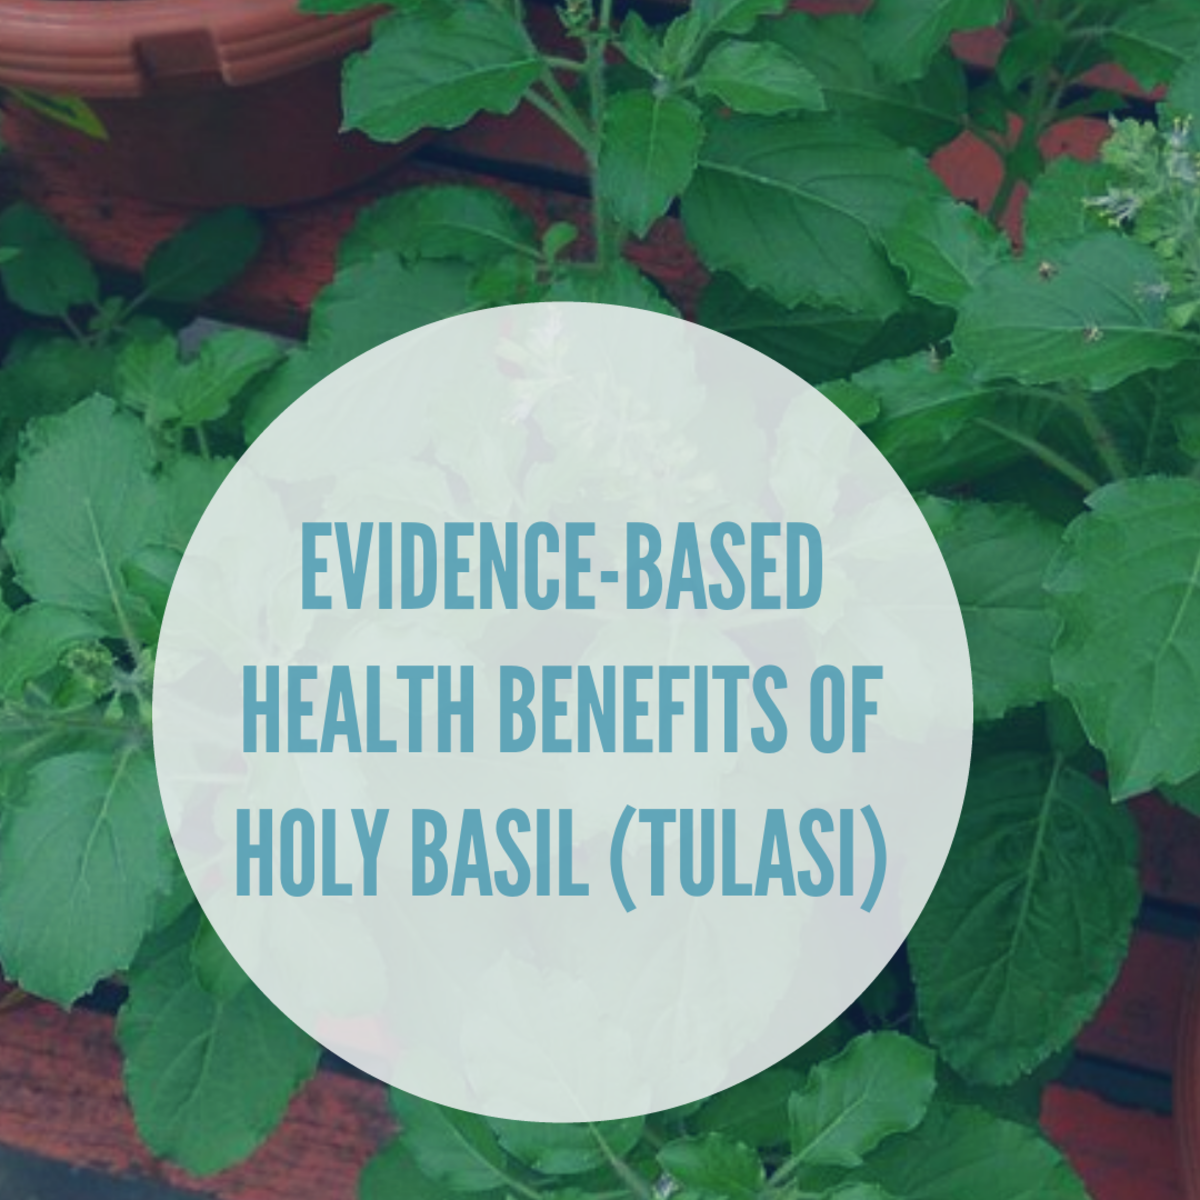 16 Evidence-Based Health Benefits of Holy Basil or Tulasi